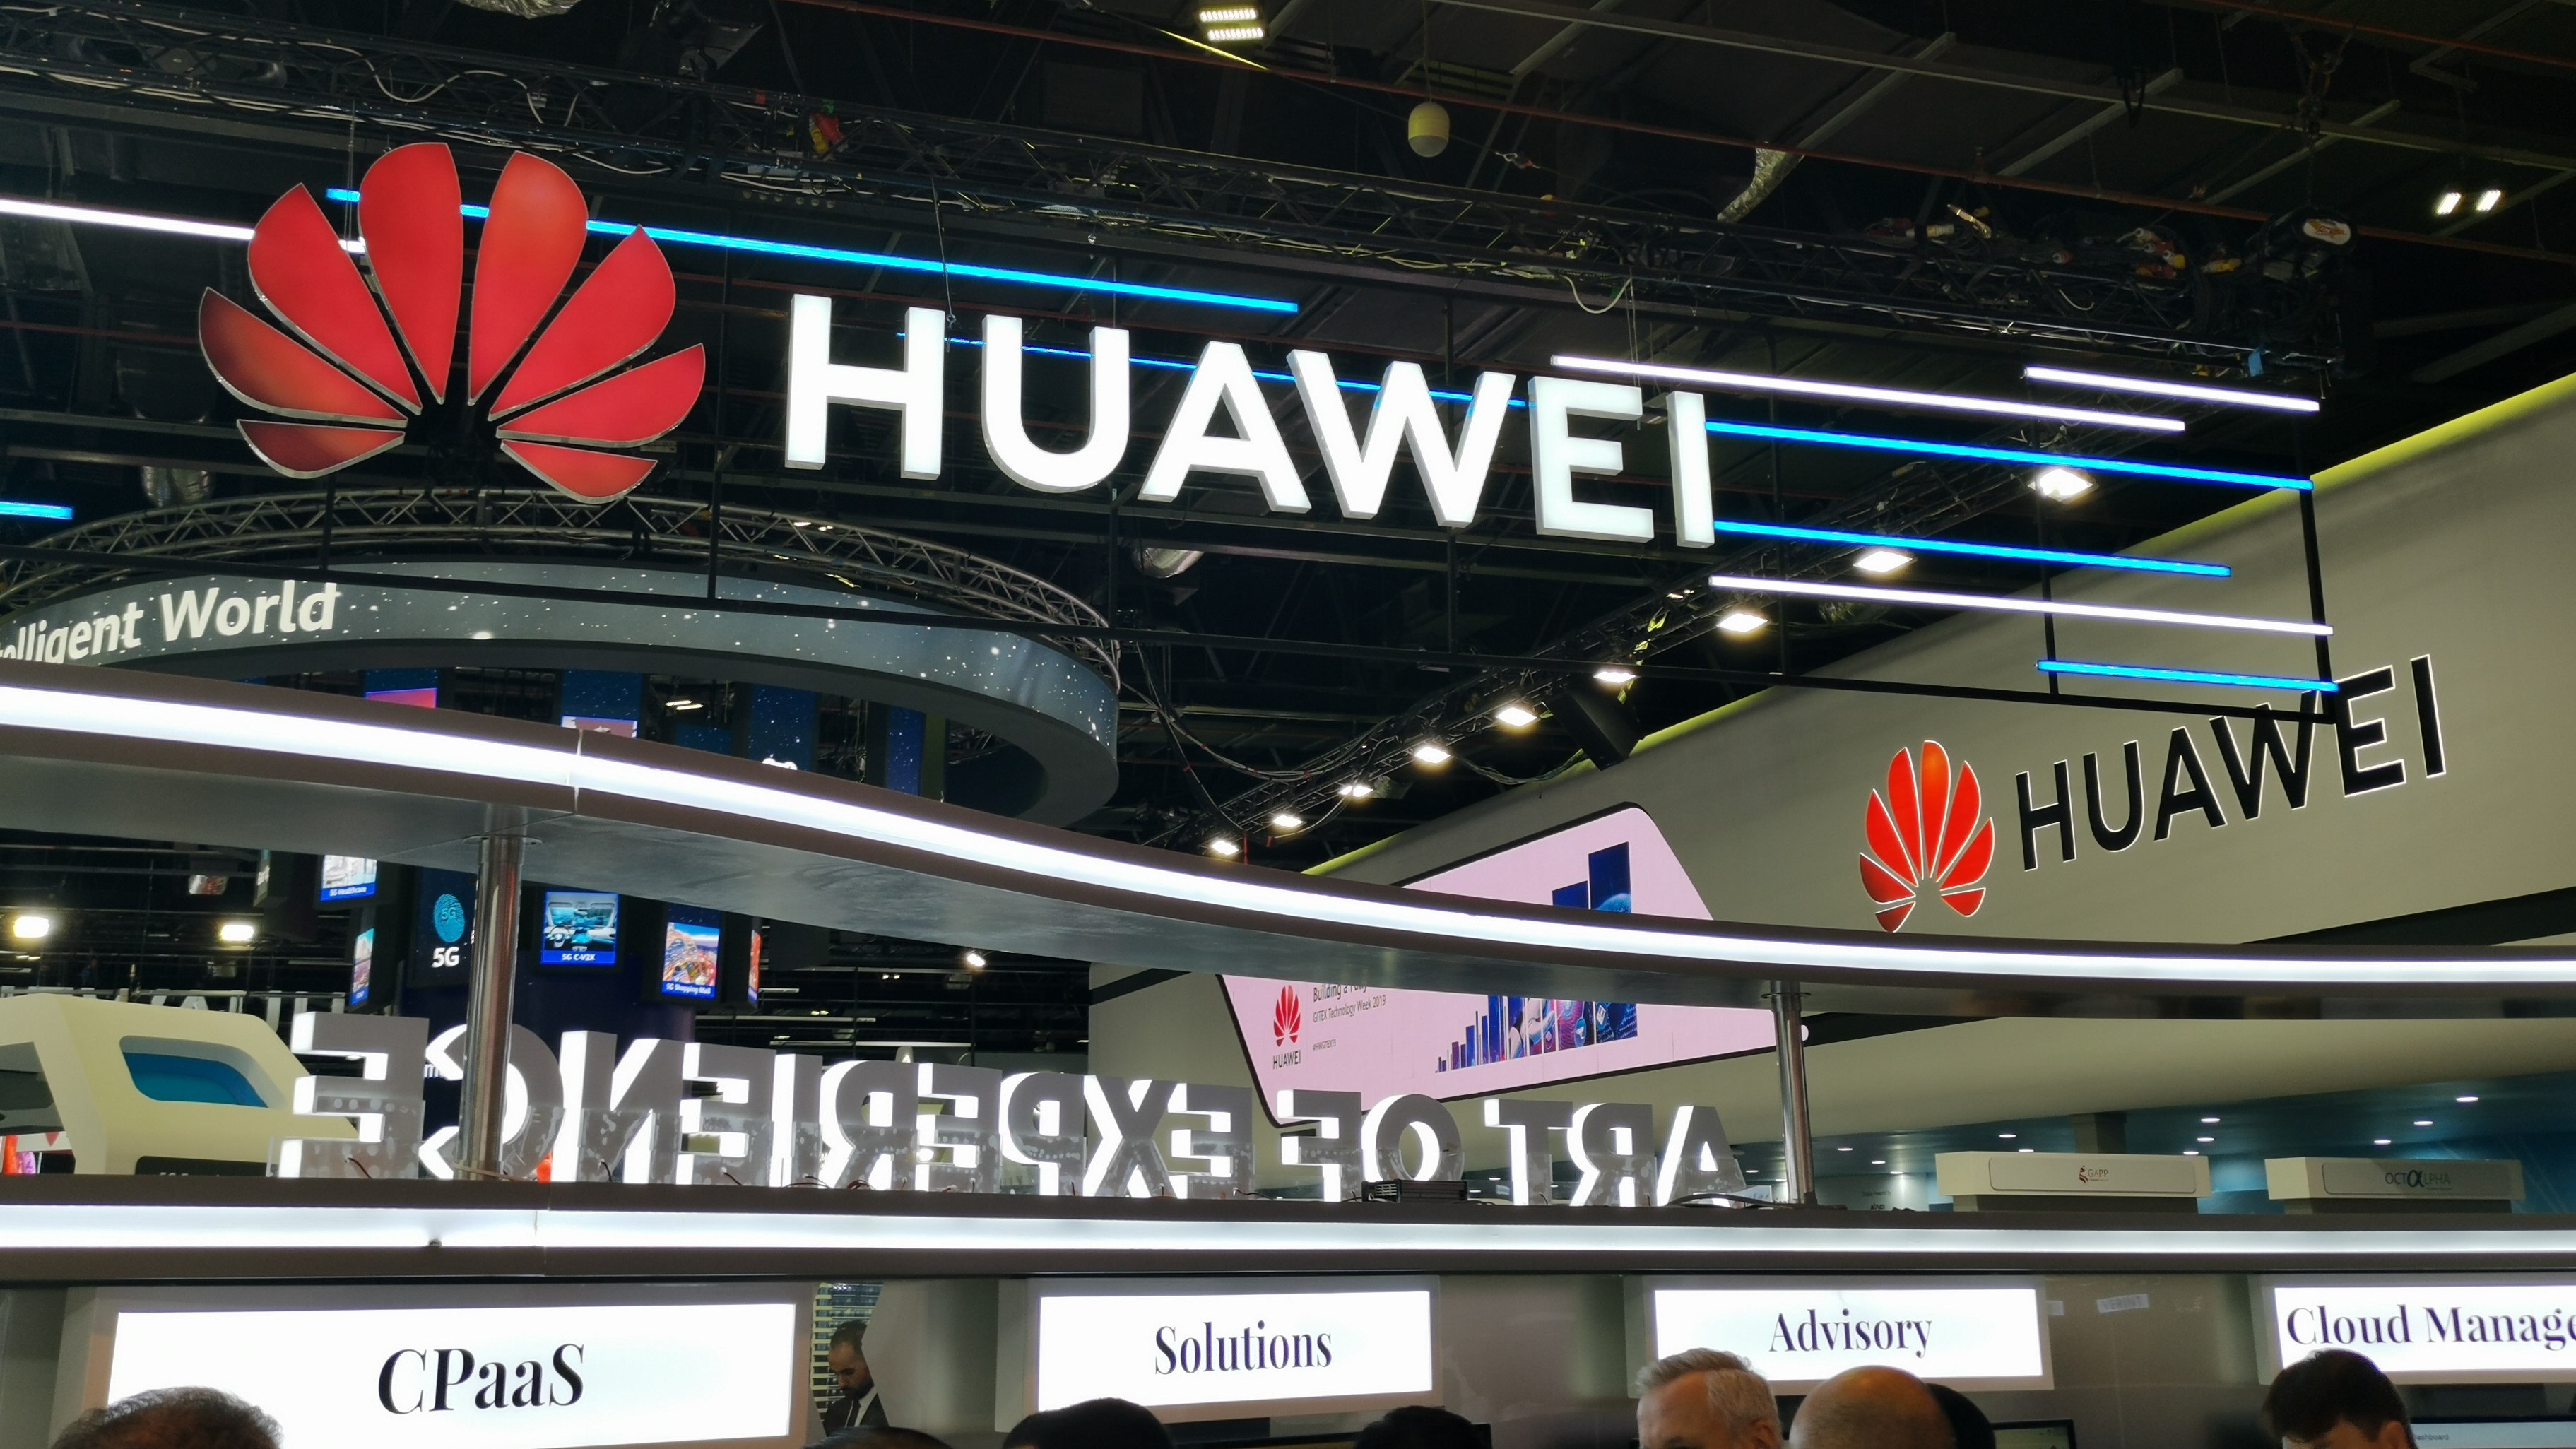 Huawei partners with TomTom for Google Maps alternative